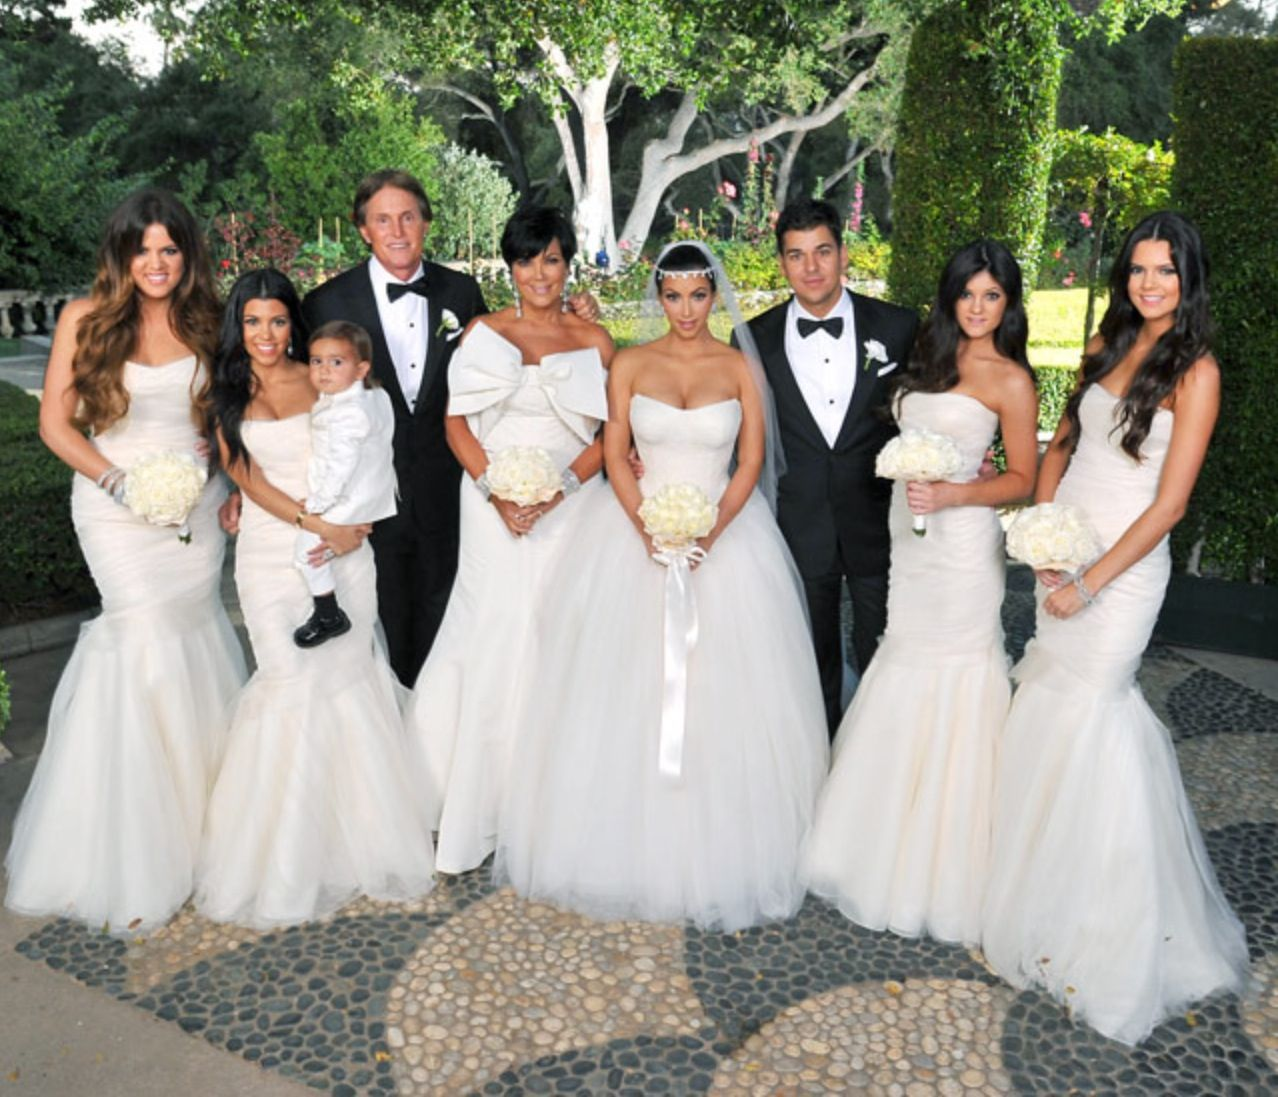 Wallpaper And Background Photos Of Kim Kardashian Kris Humphries Wedding For Fans Kendall Jenner Images